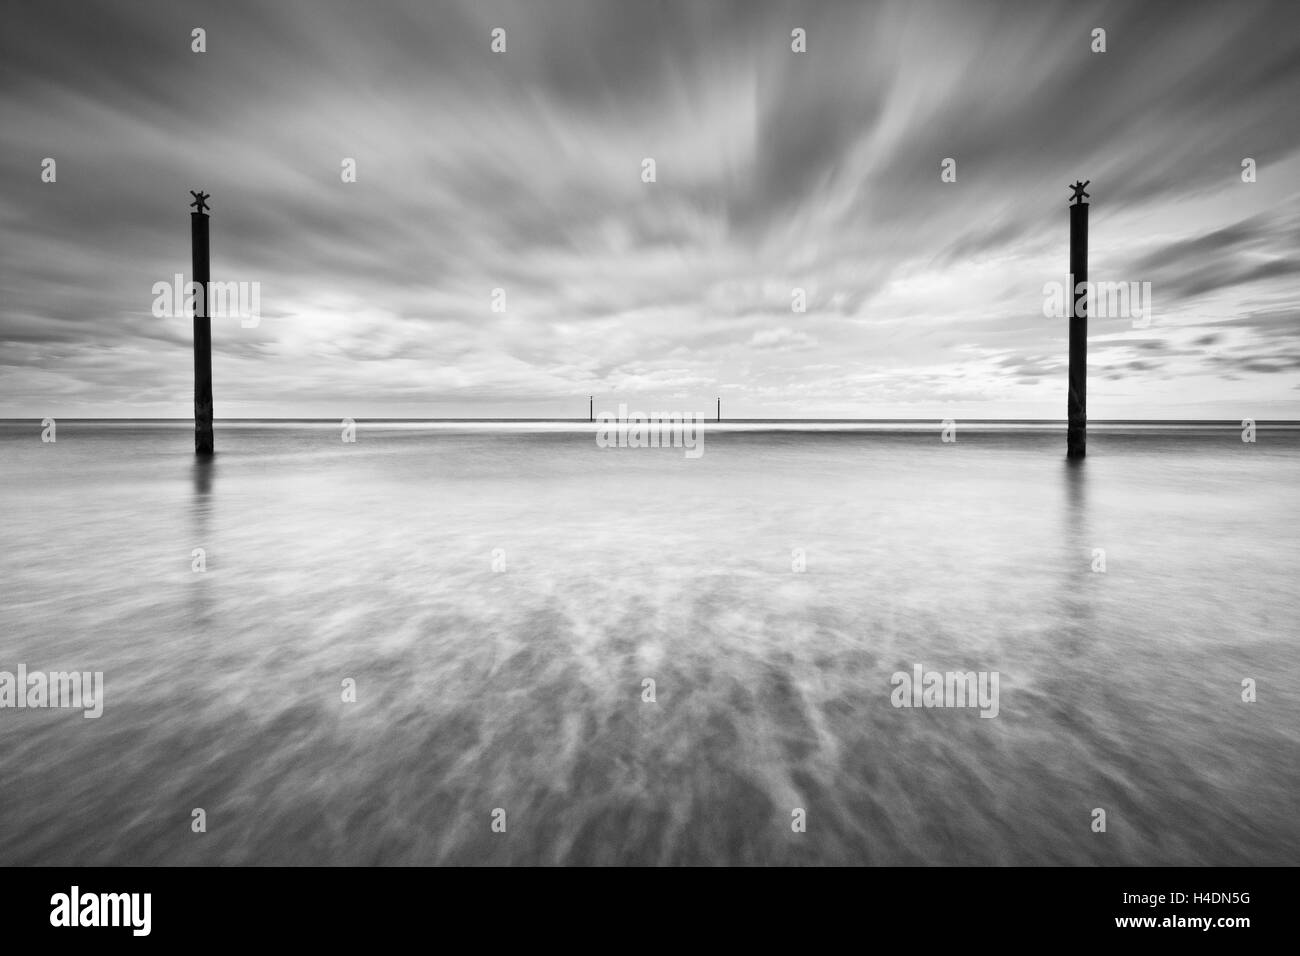 Navigation guide posts in the North Sea off the Northumberland coast on an overcast day, long exposure creative - Stock Image